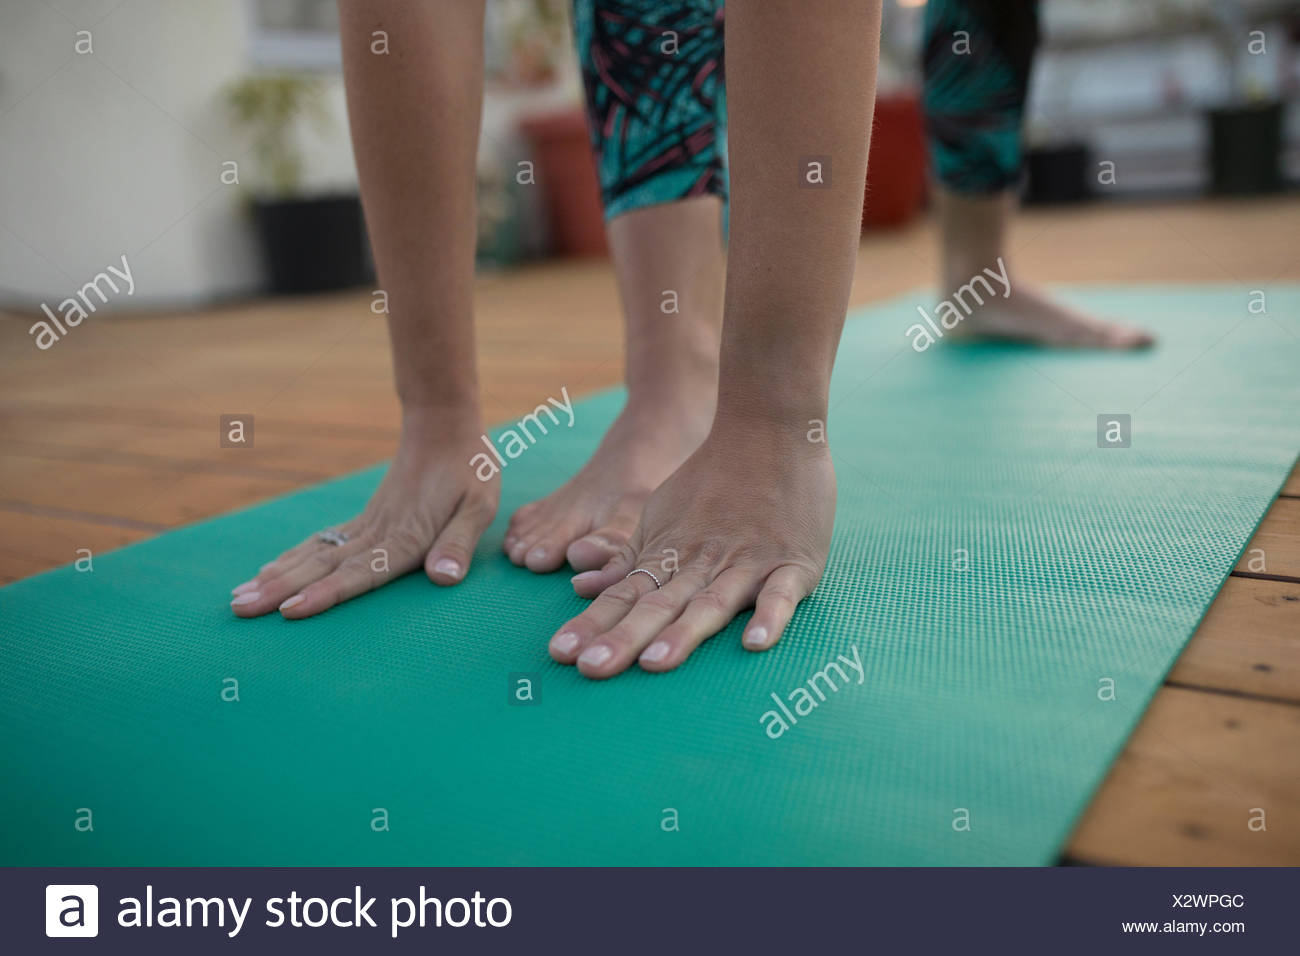 Close up woman practicing yoga on yoga mat with foot between hands - Stock Image